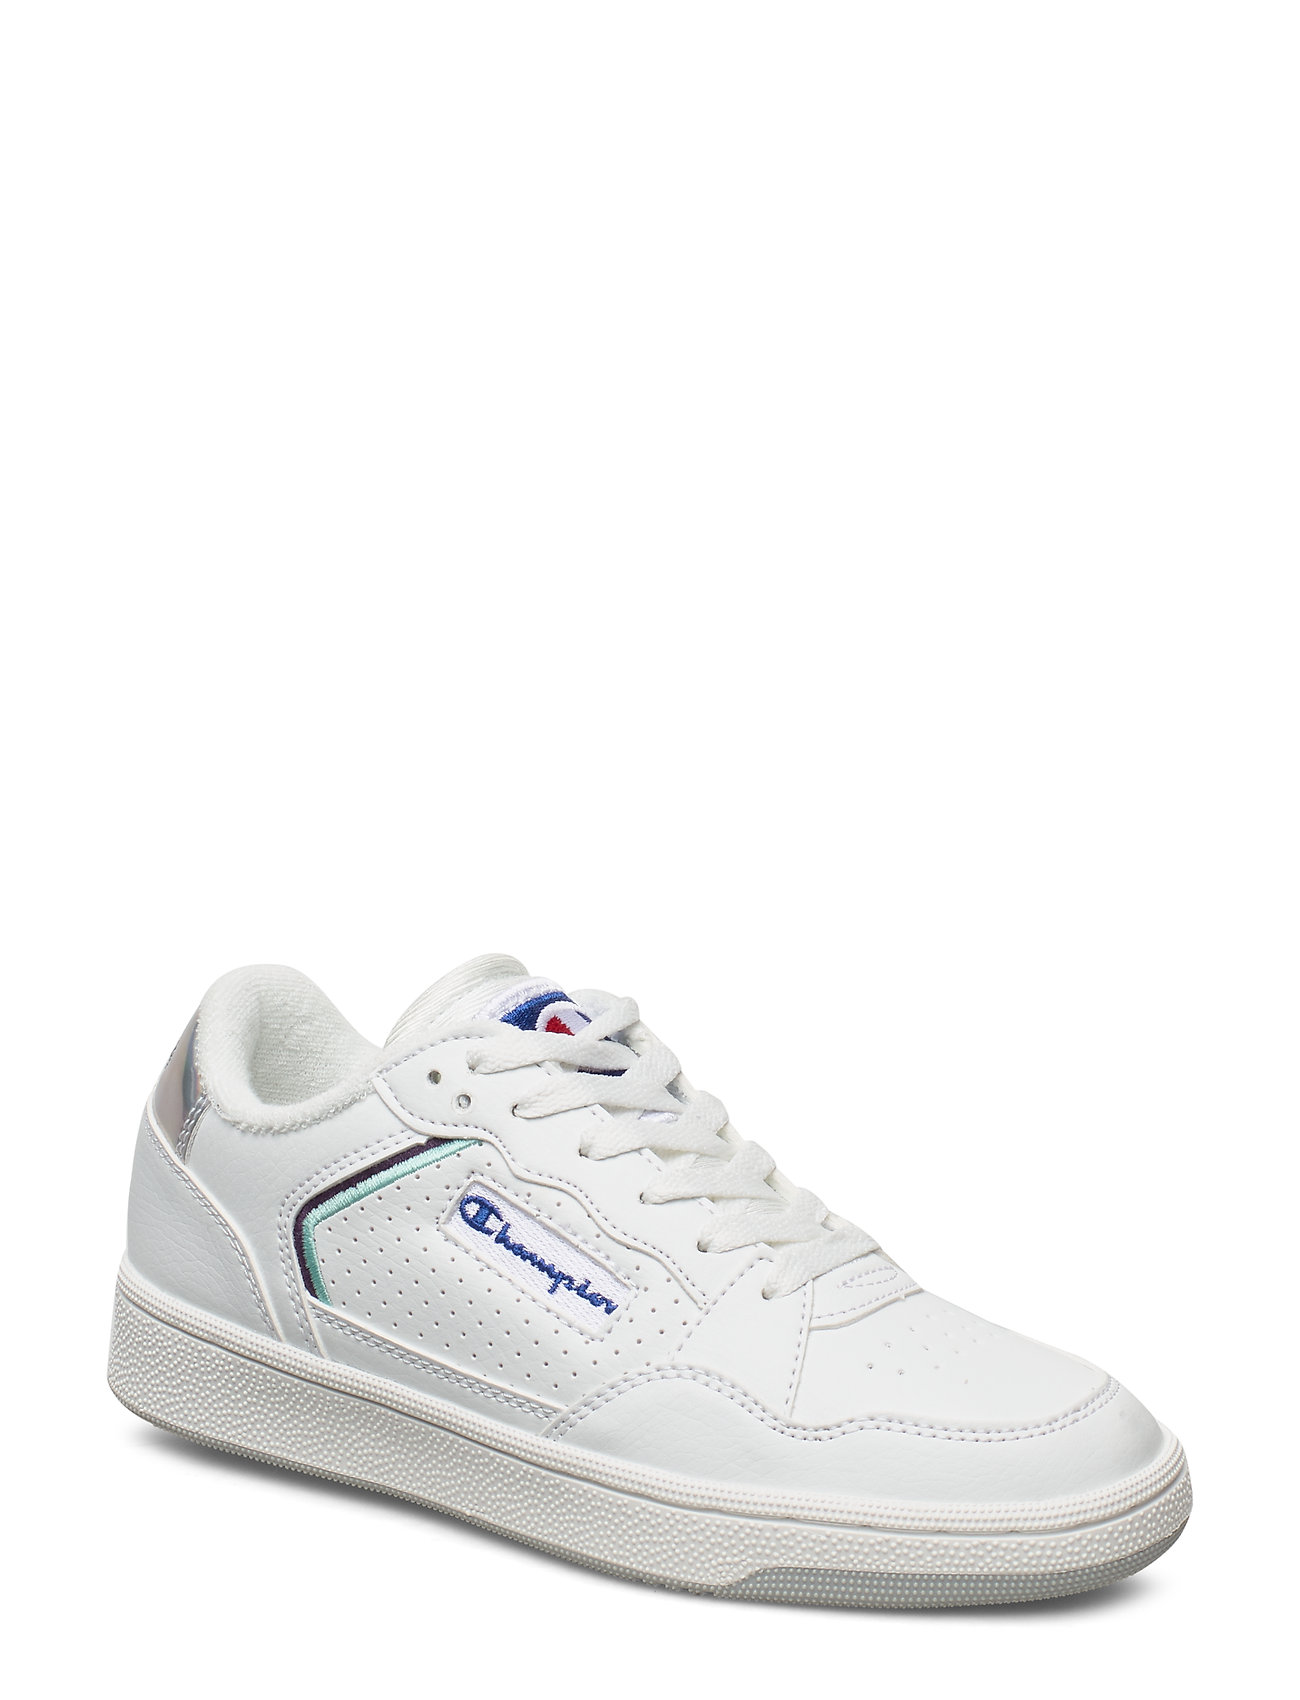 Image of Low Cut Shoe Arizona Low-top Sneakers Hvid Champion (3362841865)